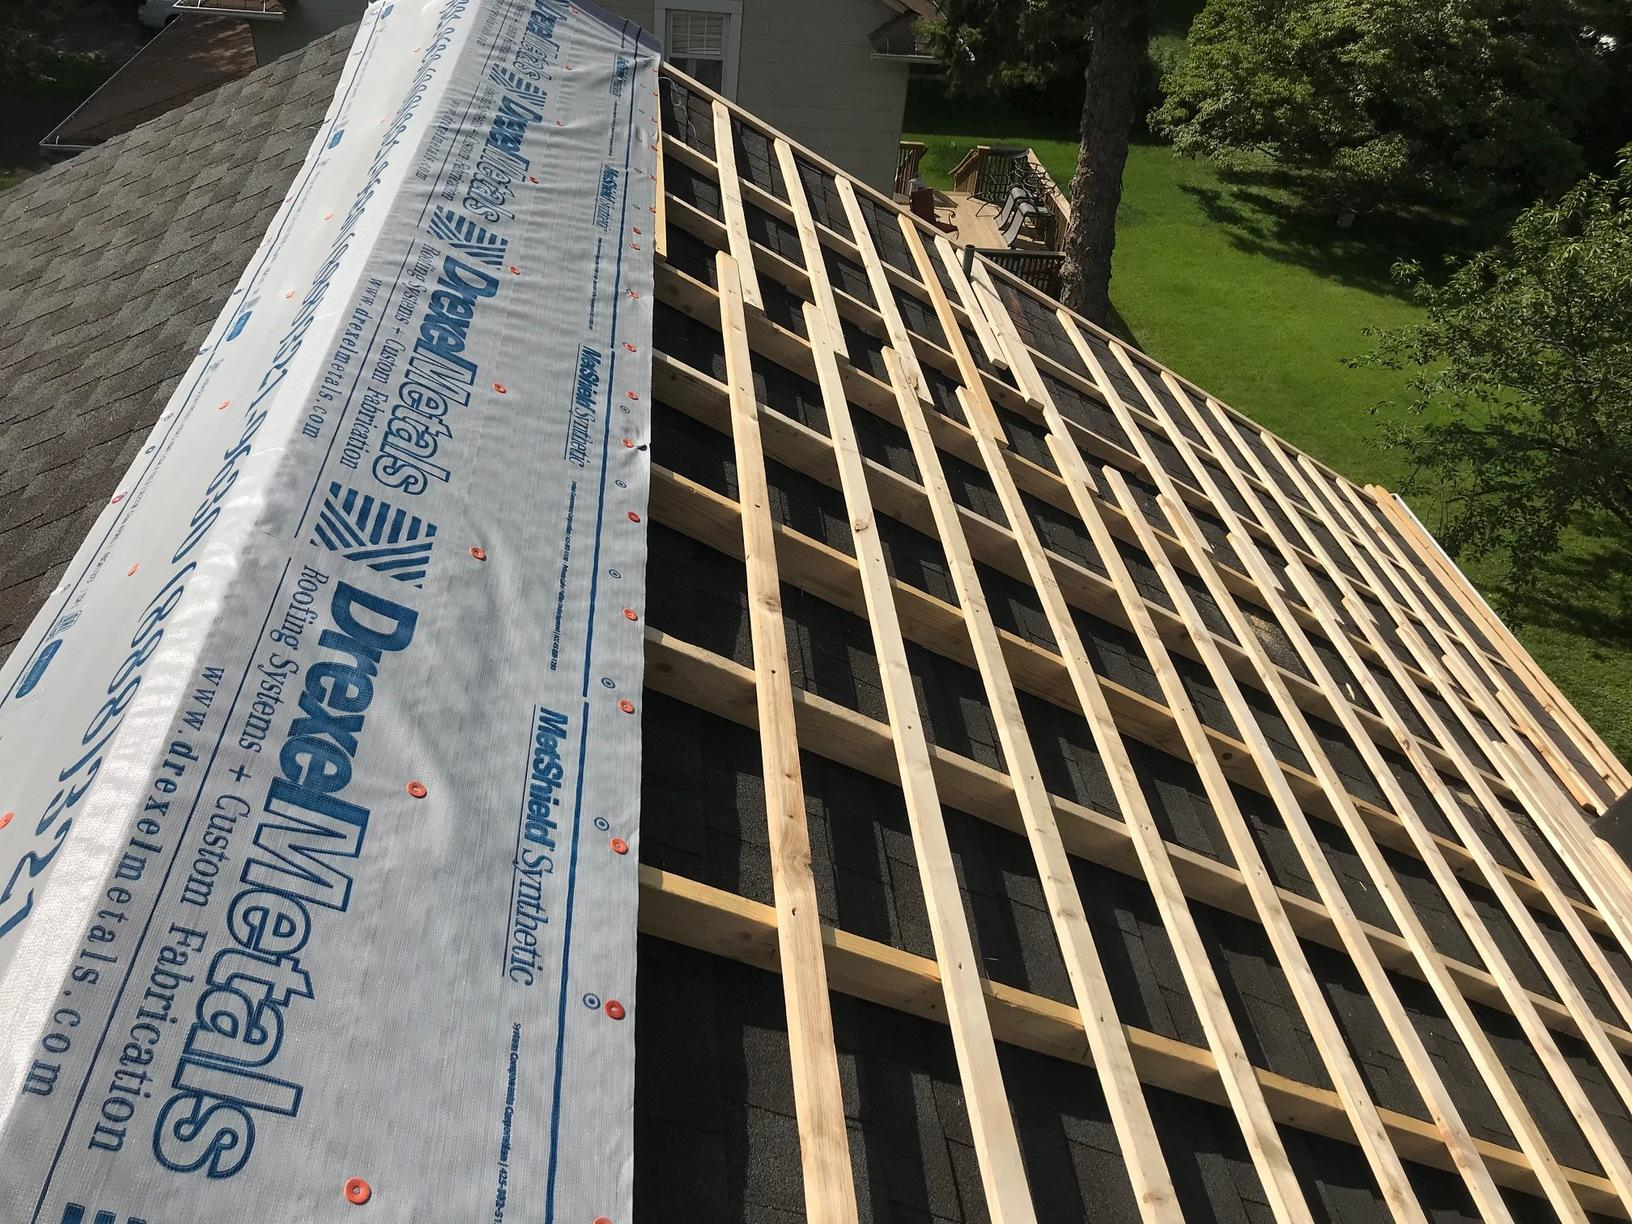 Applying Wood for Metal to be Installed Over Shingles